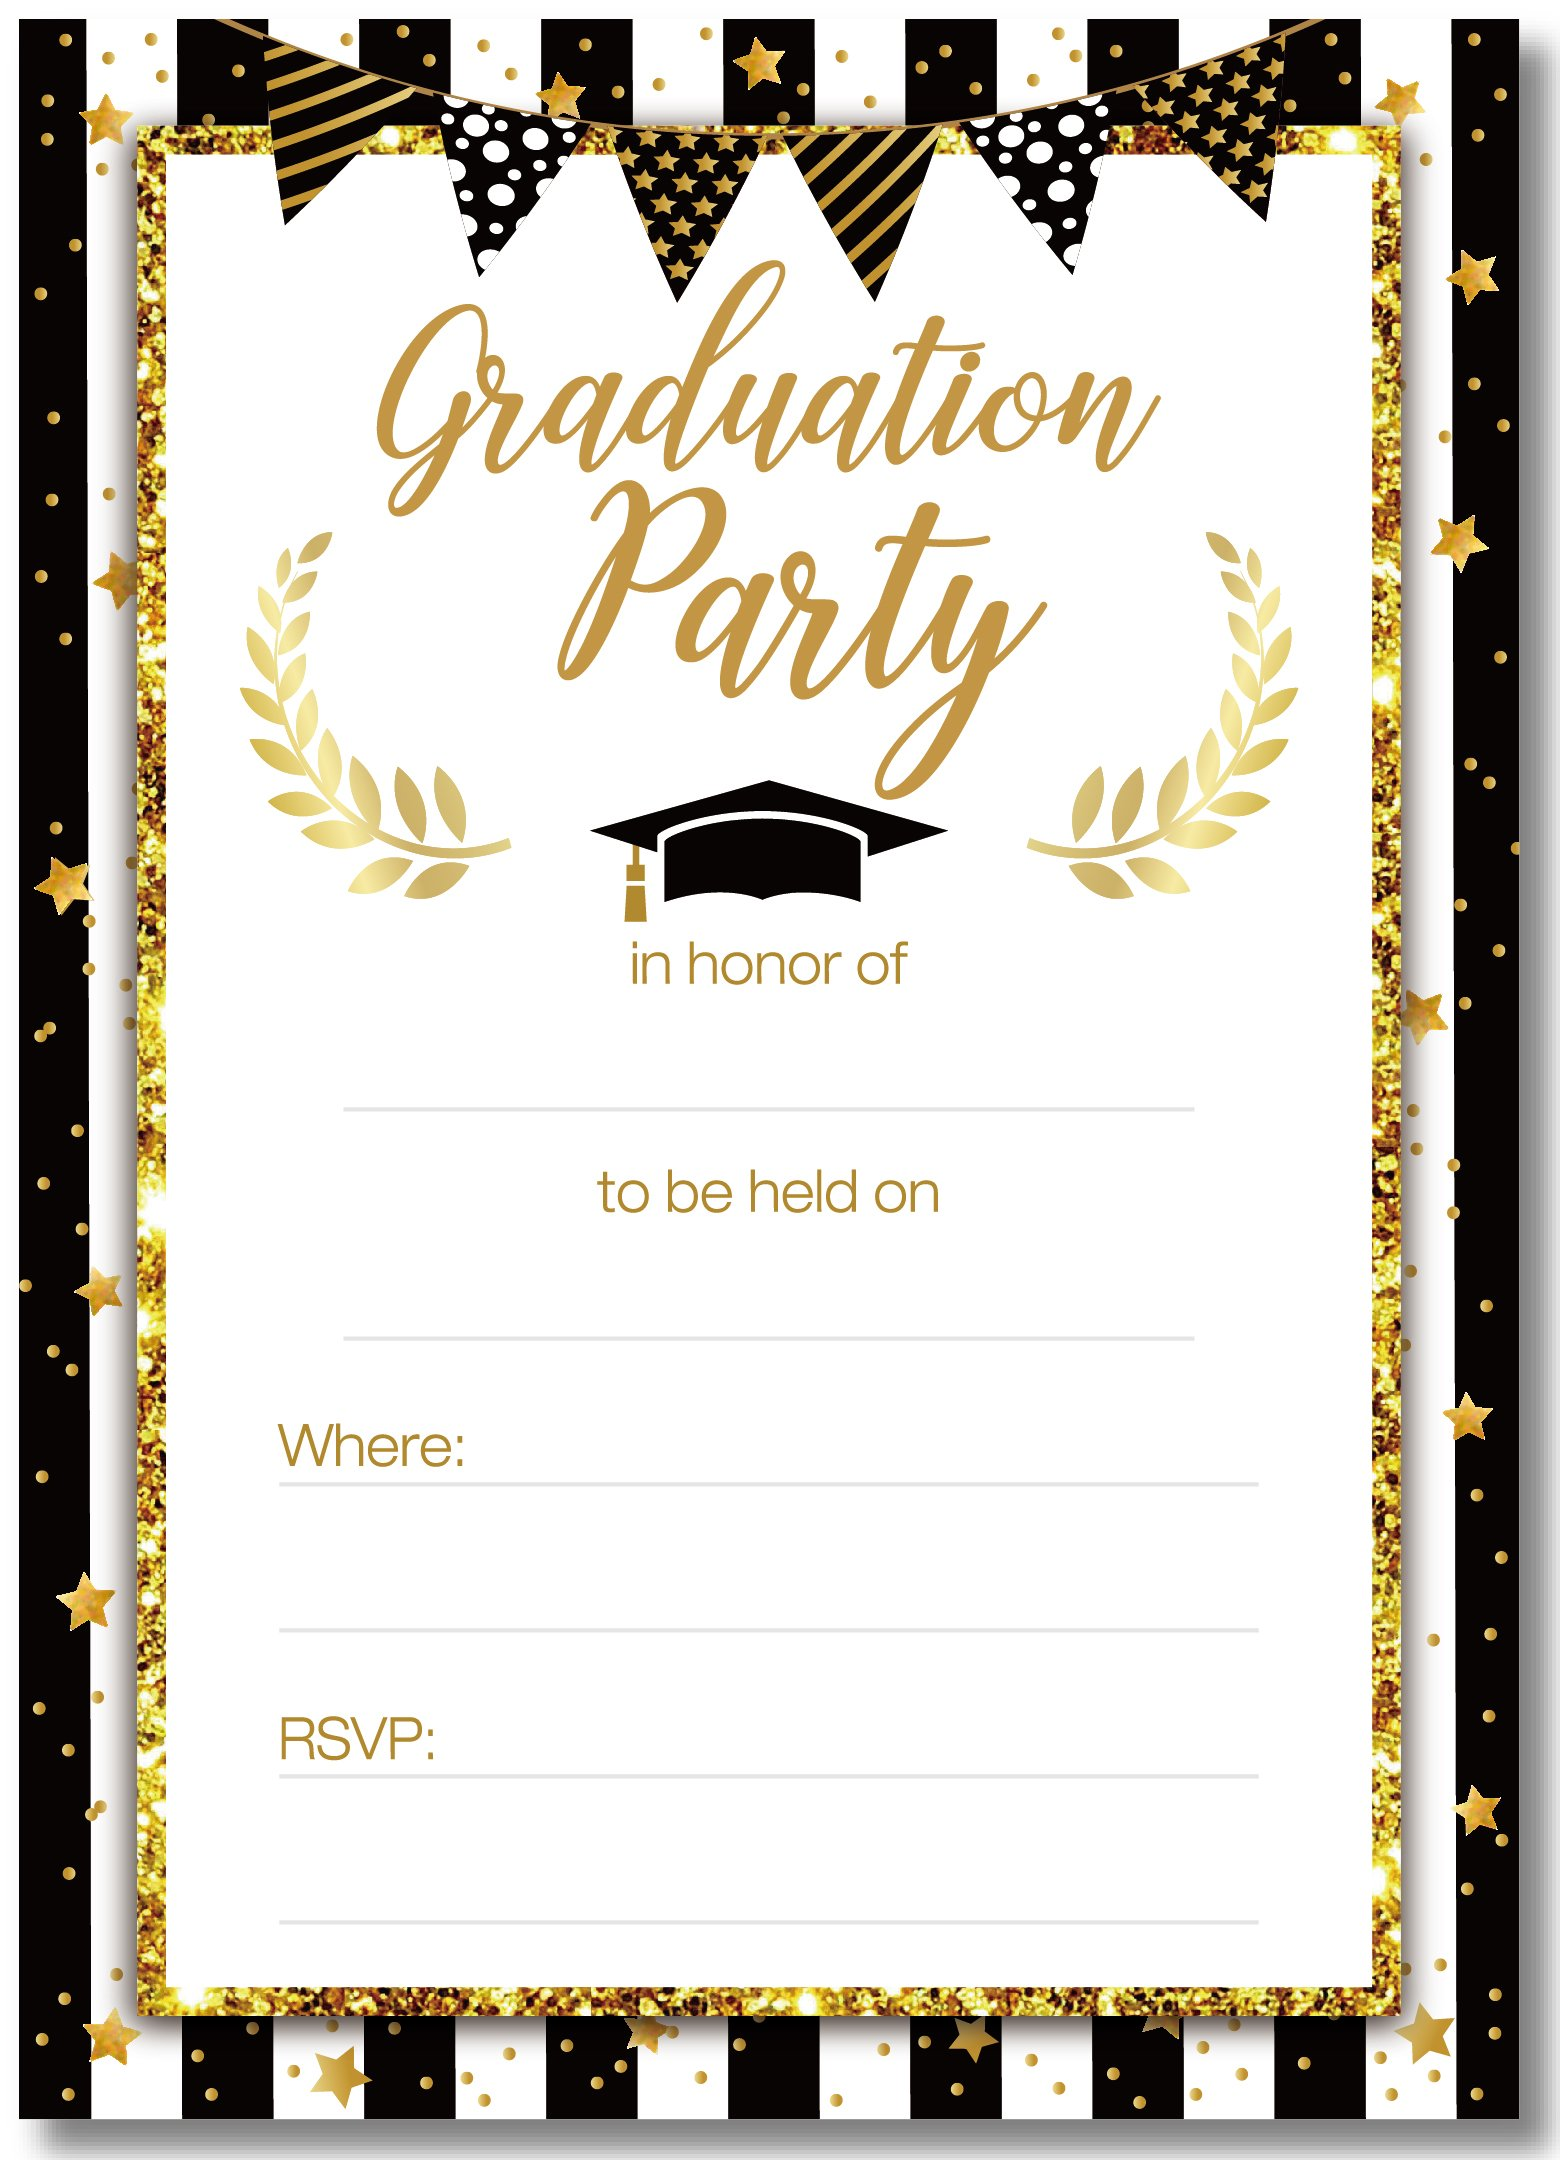 Graduation Party Invitations Cards with Envelopes 2018 - Grad Congrats Announcements Supplies 30Ct